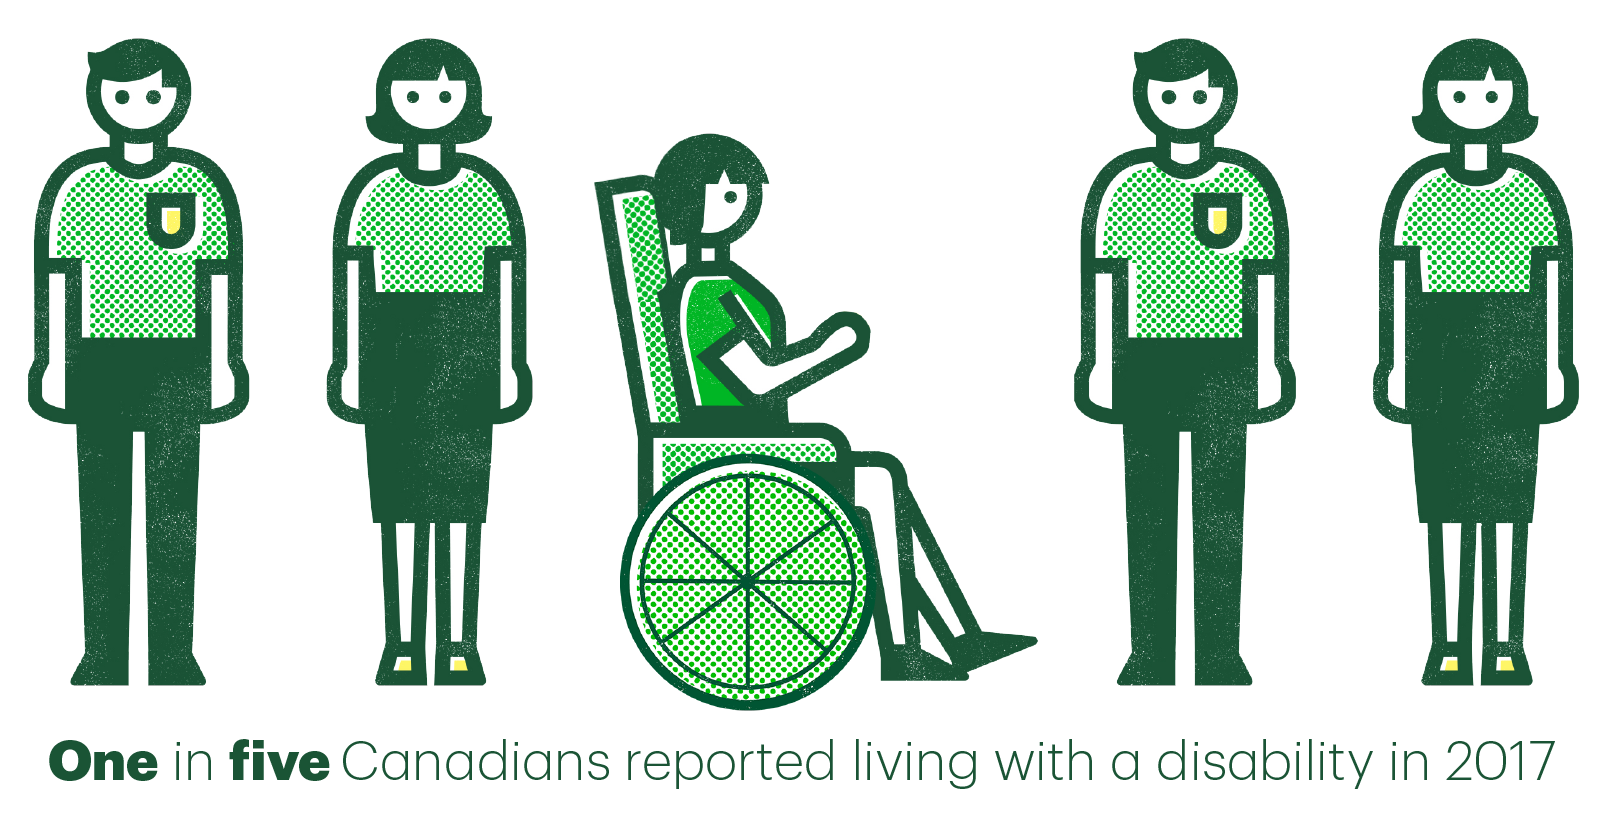 One in five Canadians reported living with a disability in 2017.